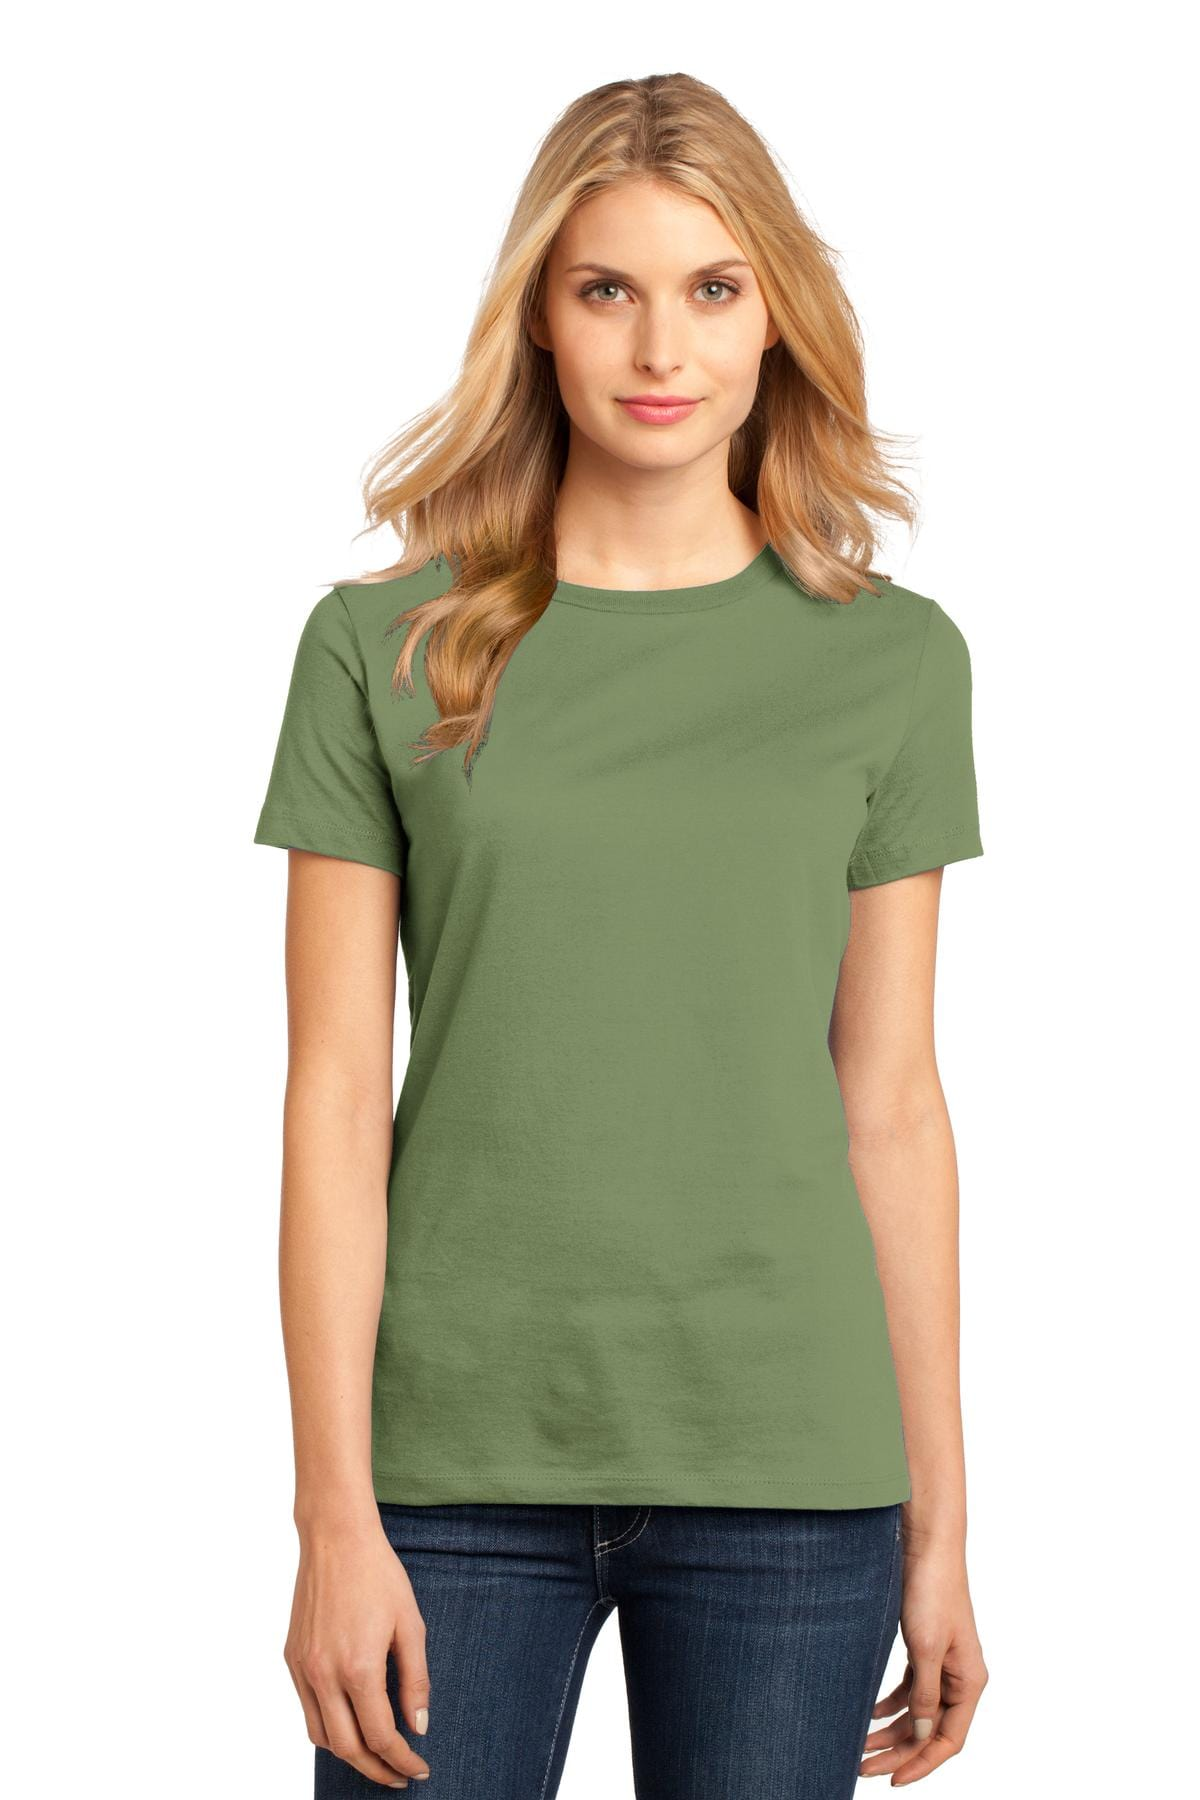 District ® Women's Perfect Weight ® Tee. DM104L, Basic Colors-Ladies-wholesale apparel